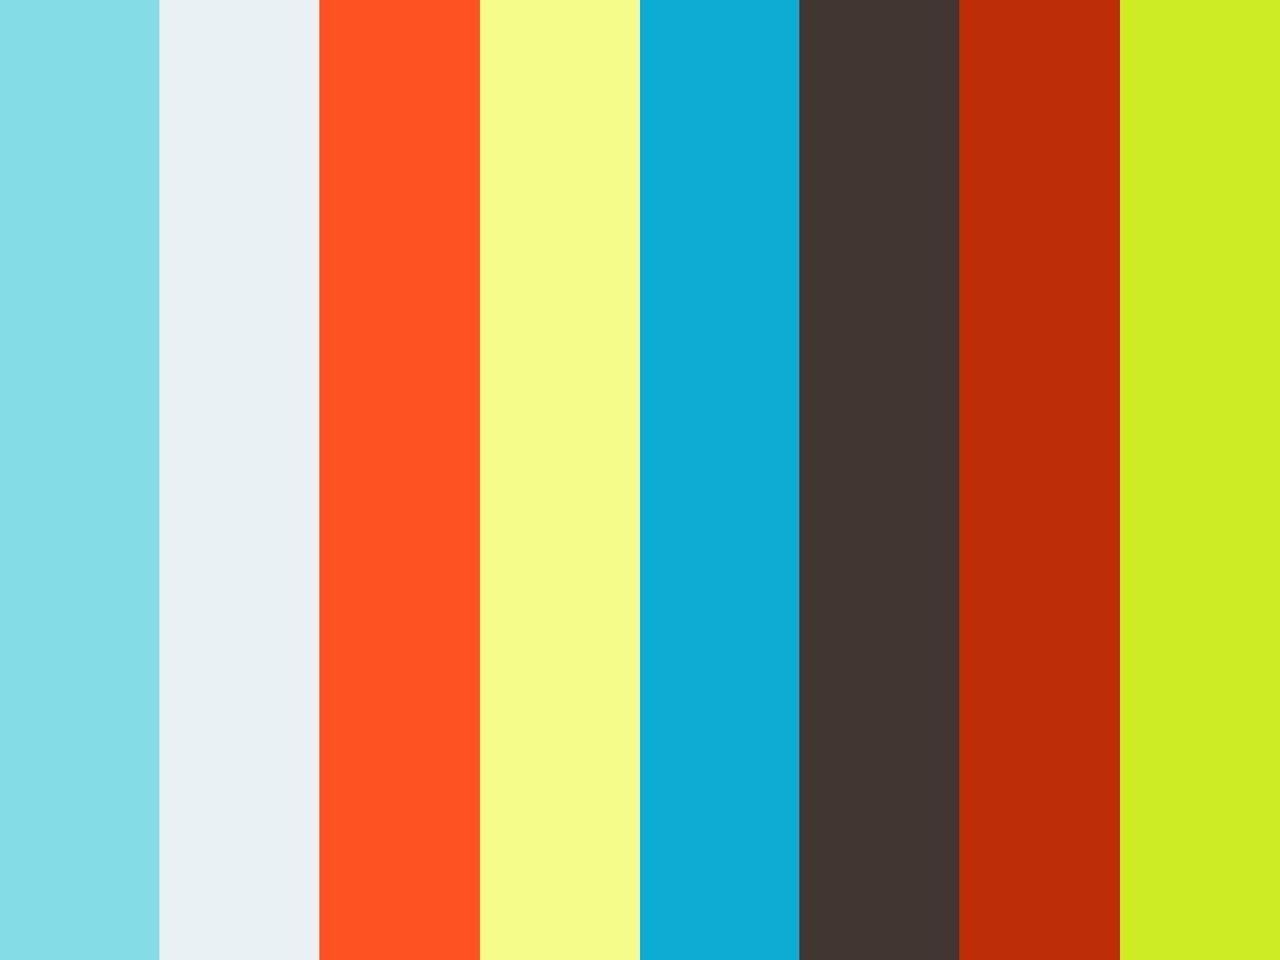 taTME vs. lap TME: Best Evidence and Trial Updates 2017